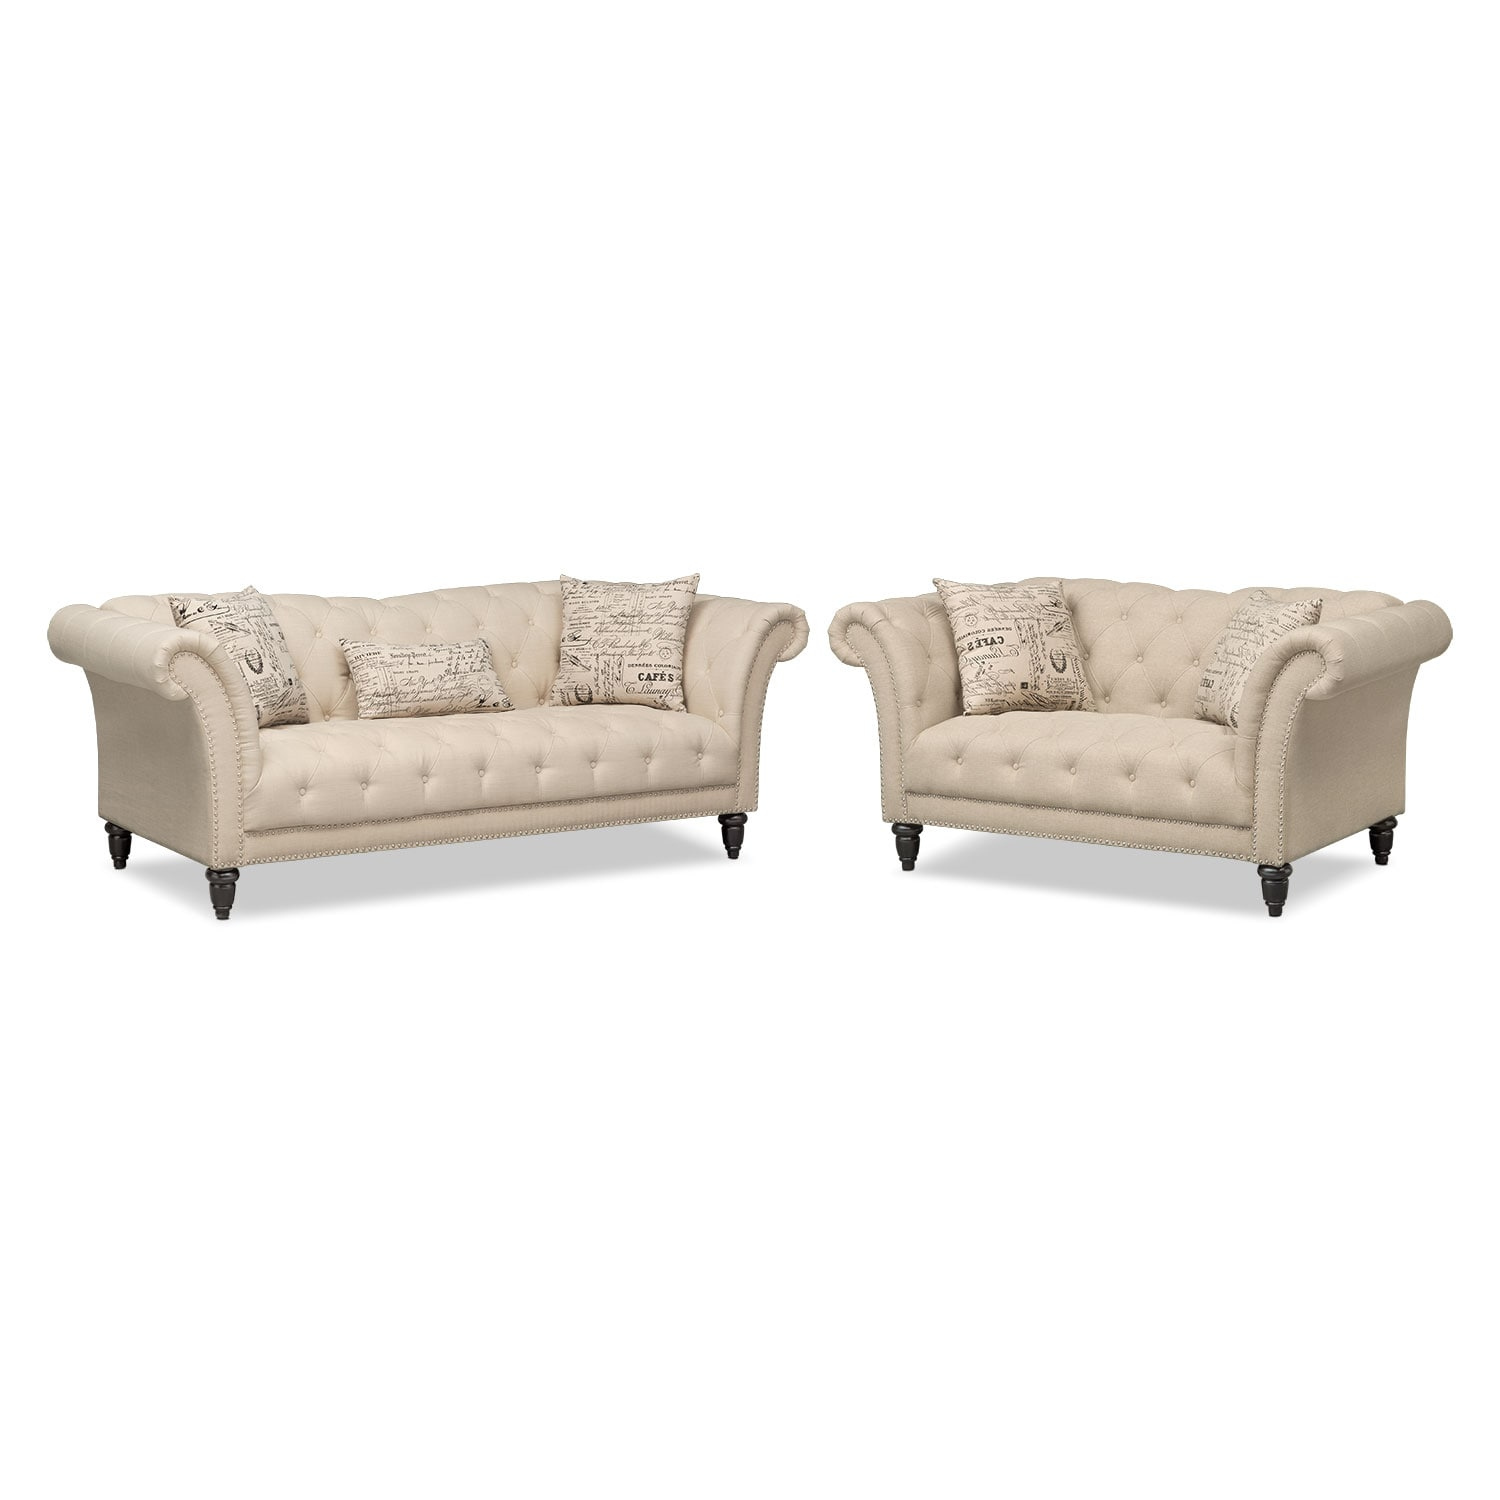 Living Room Furniture - Marisol Sofa and Loveseat - Beige